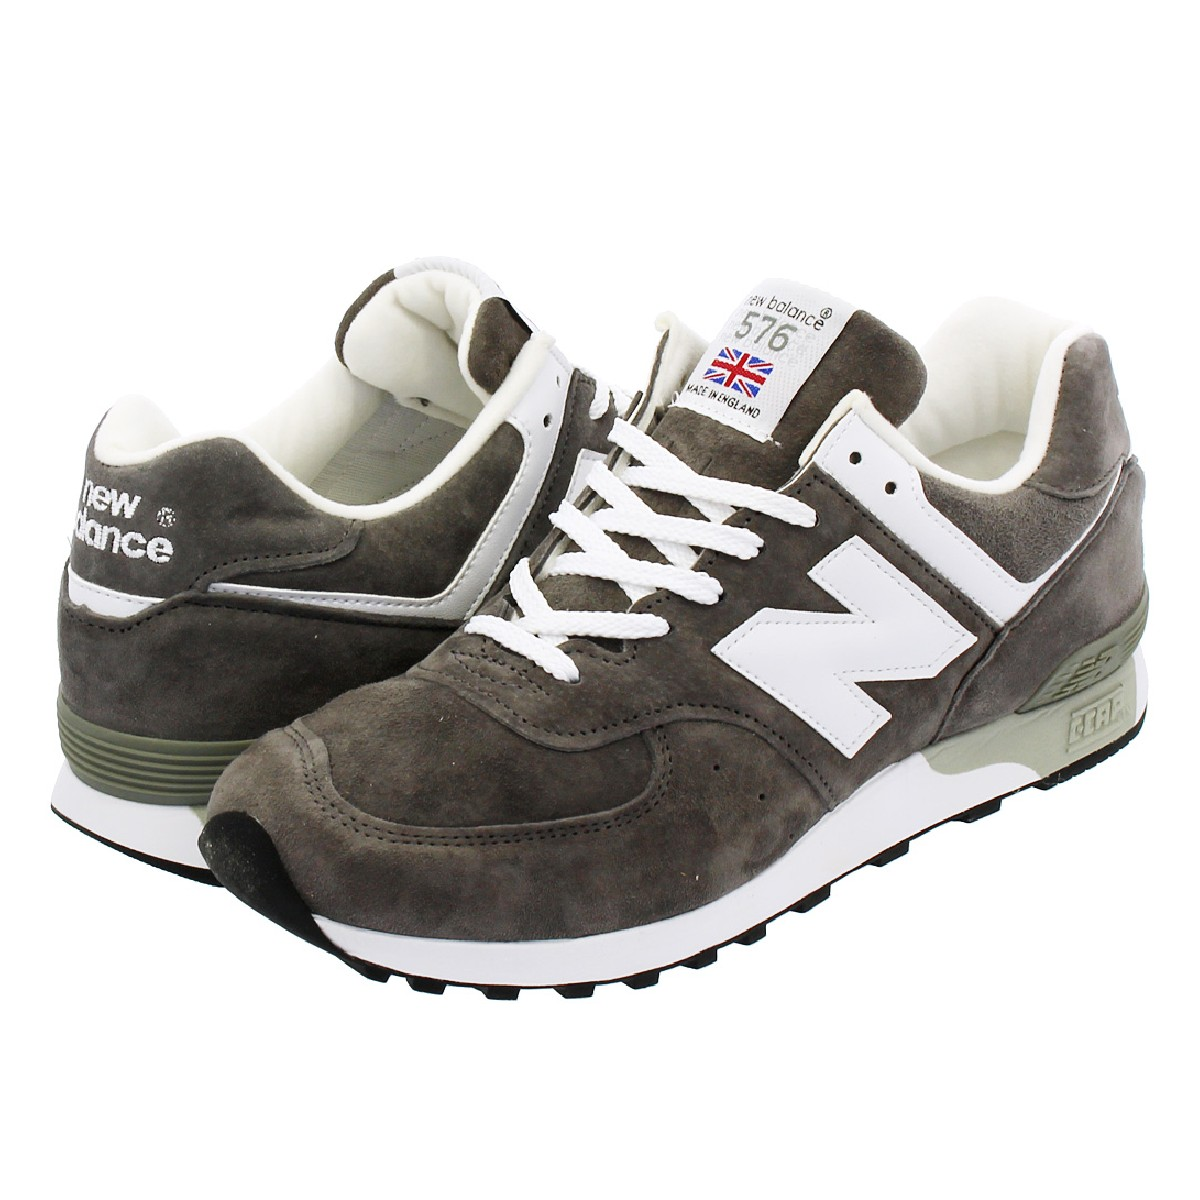 NEW BALANCE M576GRS 【MADE IN ENGLAND】 ニューバランス M 576 GRS GREY